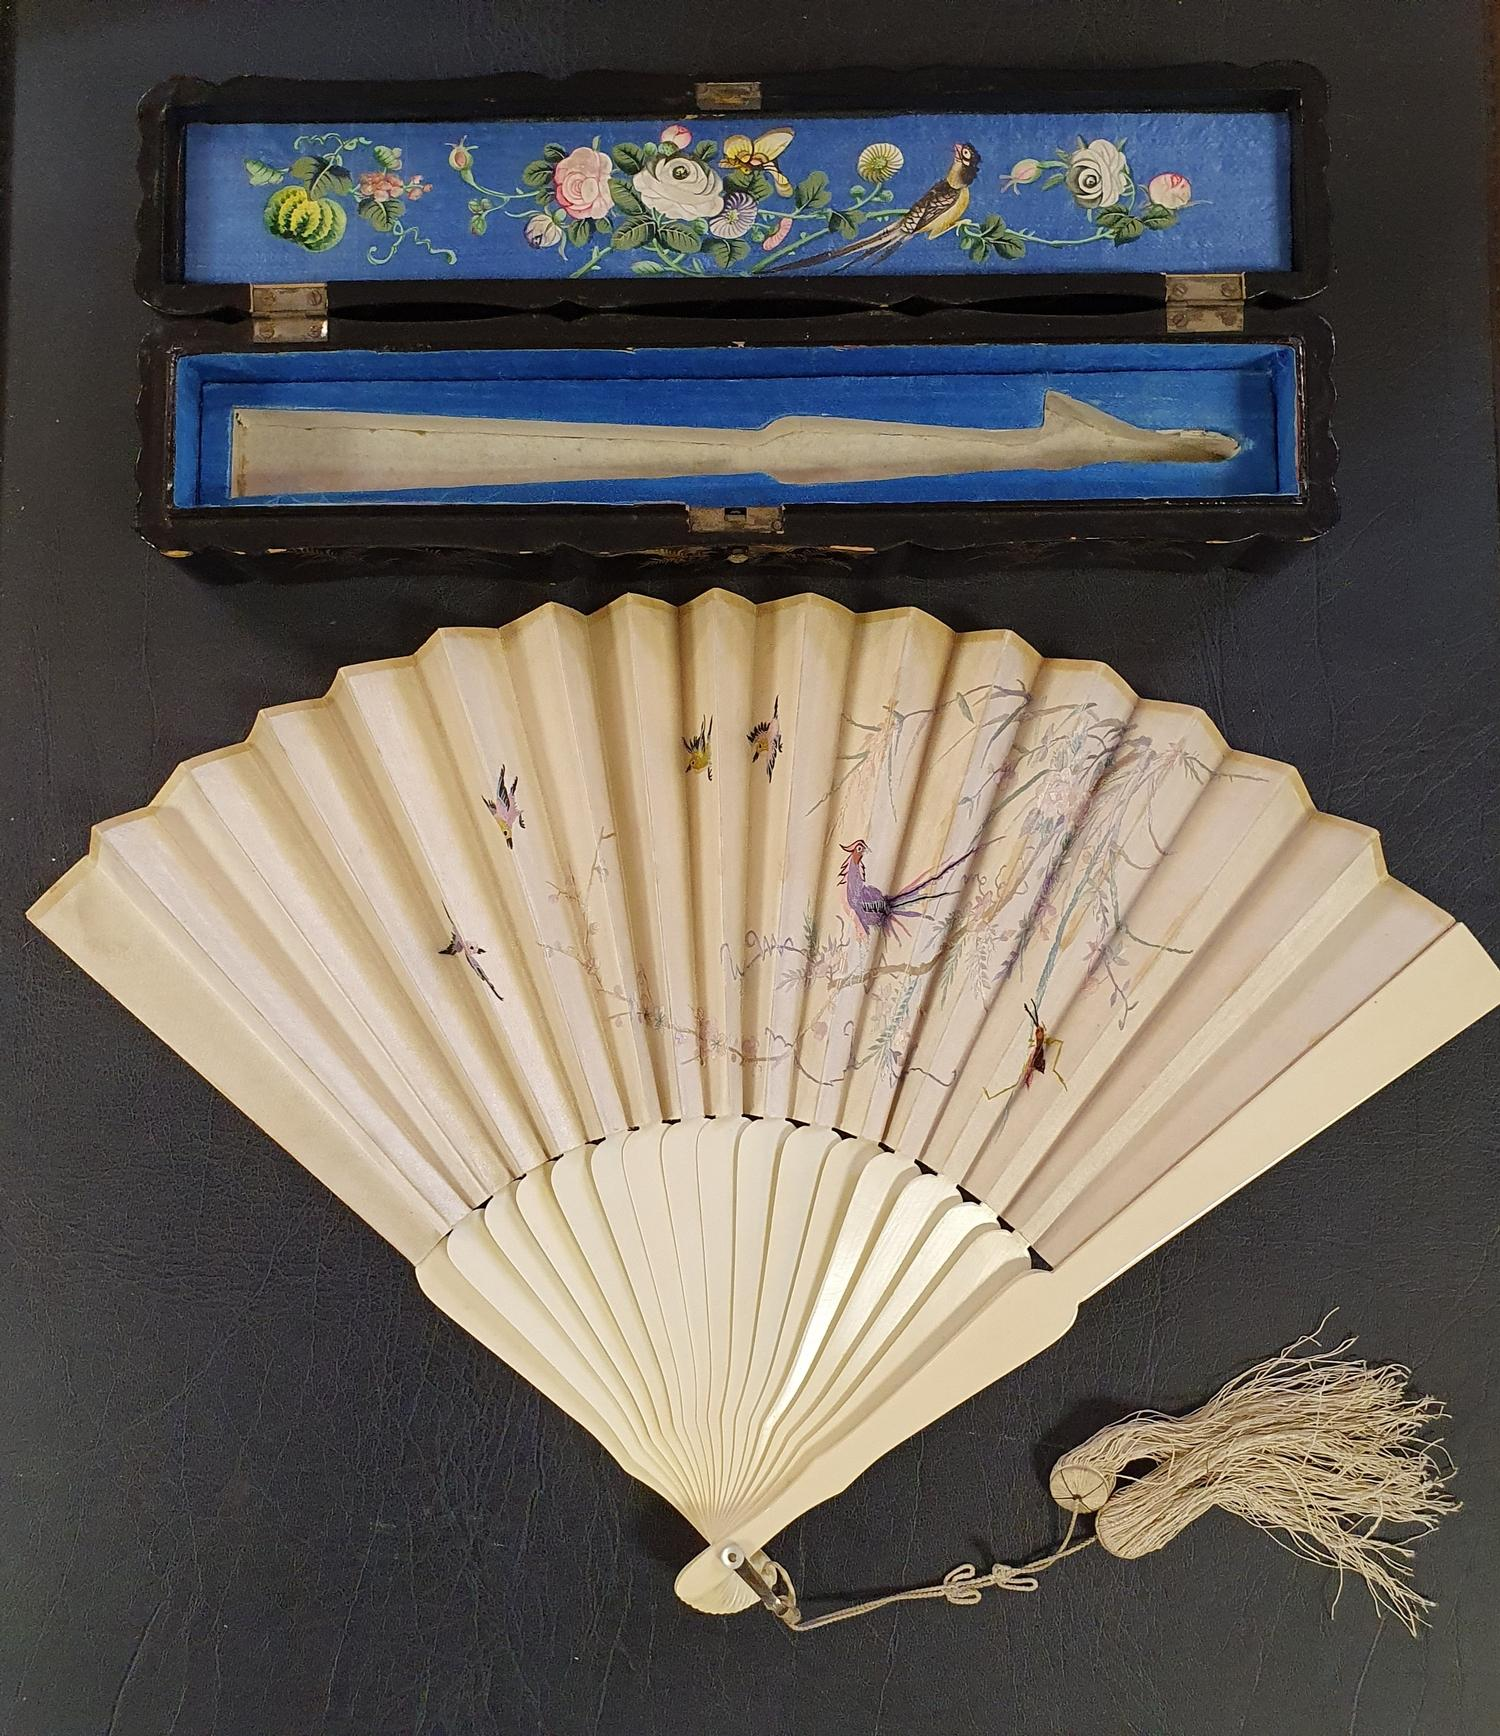 A Chinese ivory brisee fan, two others, and a similar fan with silk embroidered decoration, in a - Image 5 of 47